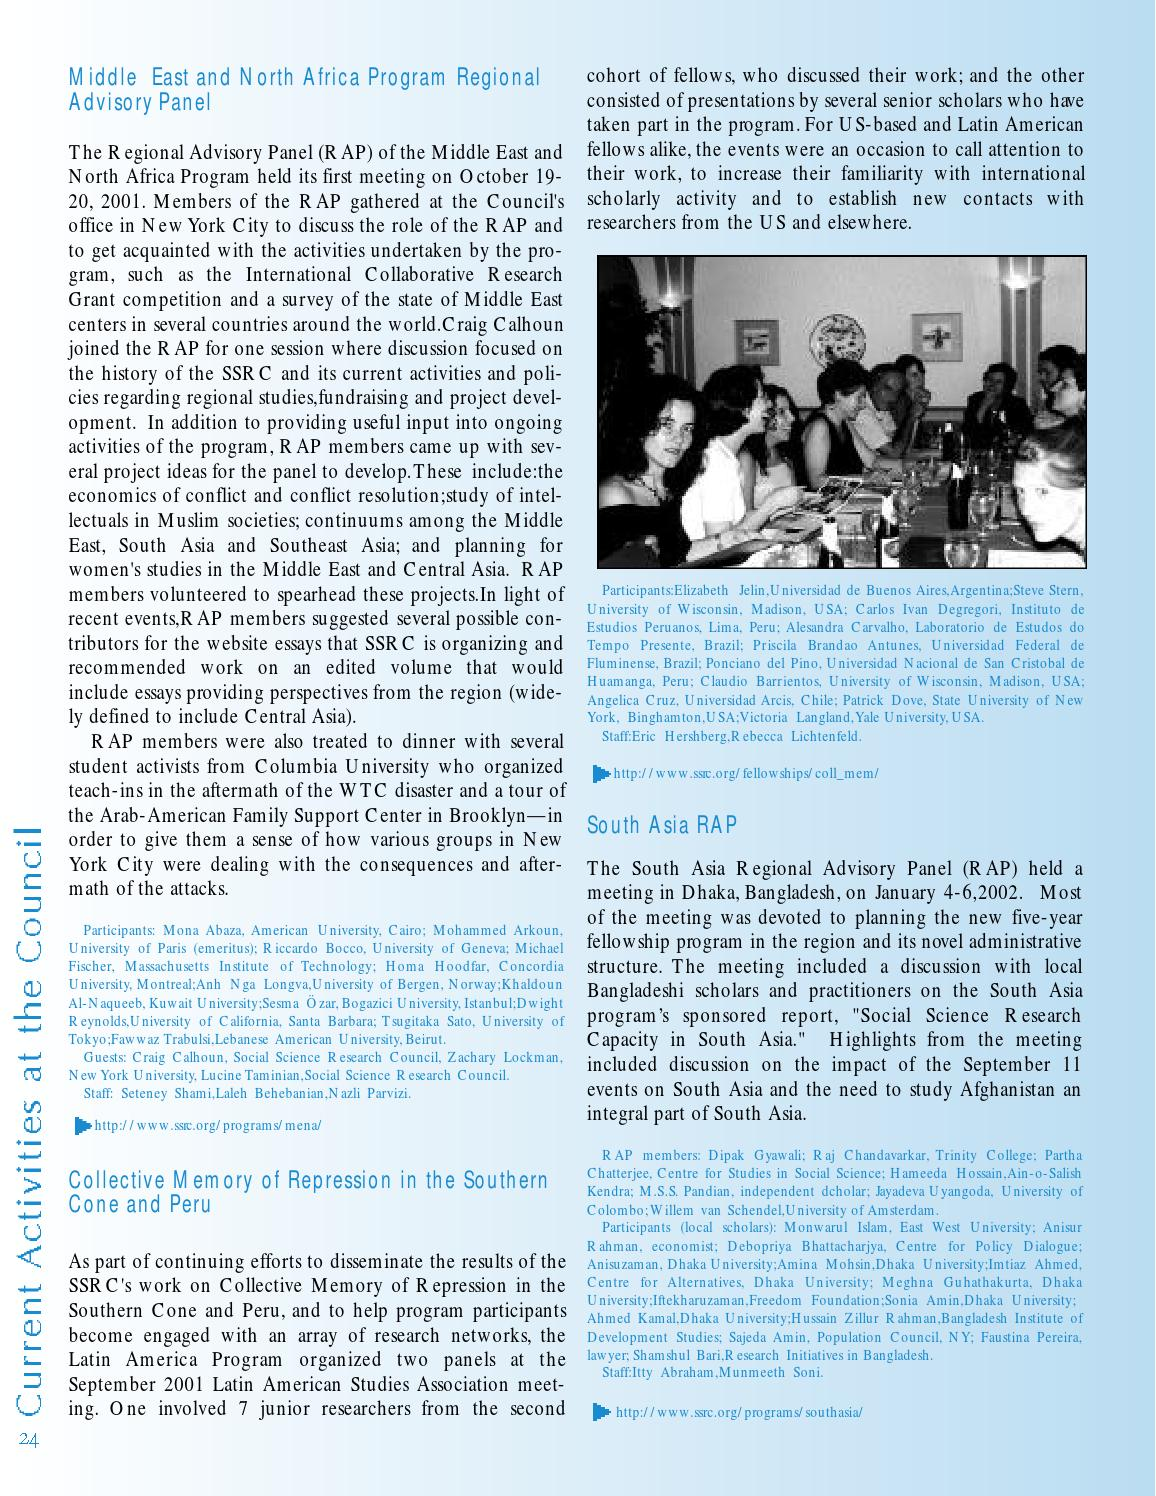 Items & Issues Vol  2 No 3-4 (2001) by SSRC's Items & Issues